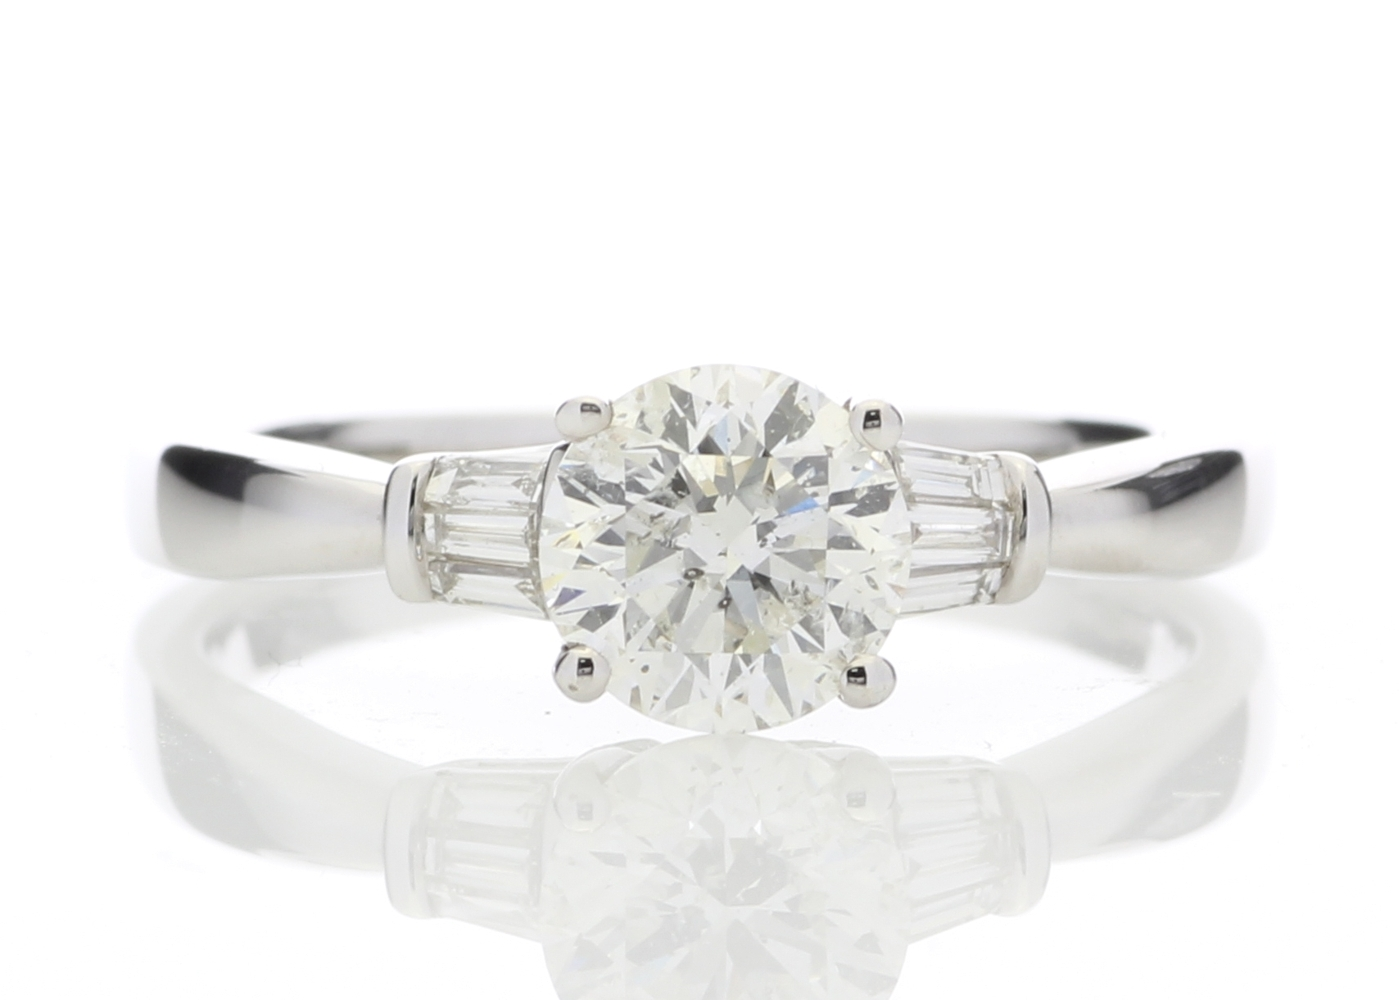 Lot 16 - 18ct White Gold Diamond Ring With Baguette 1.15 Carats